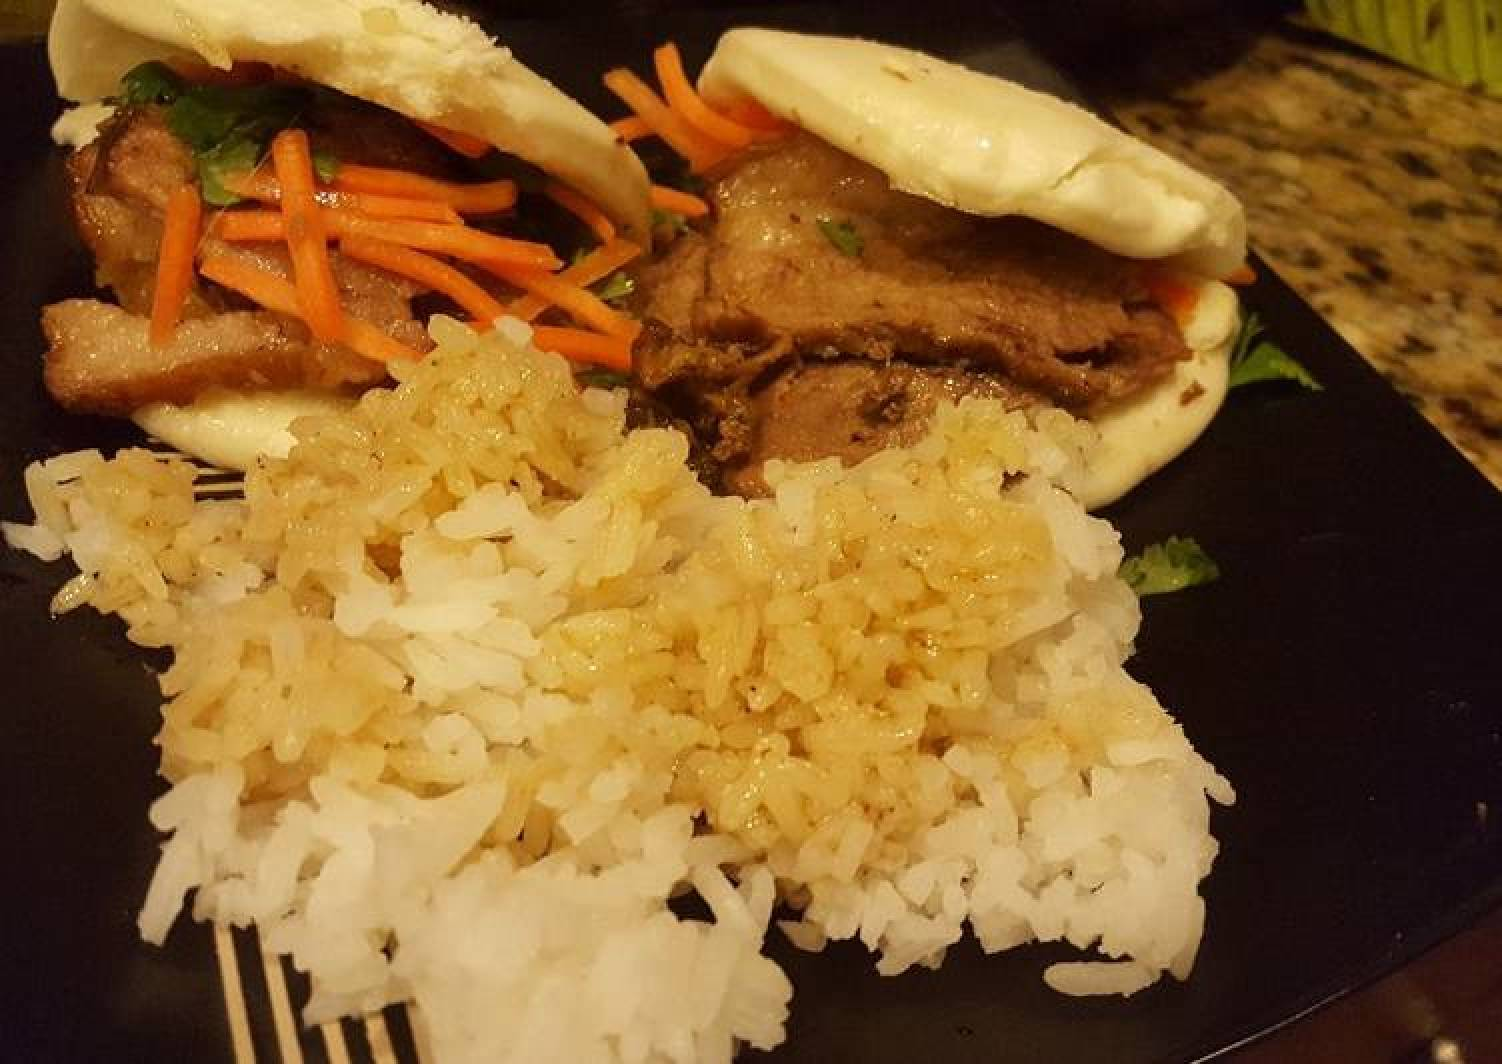 Steamed Buns with Braised Brisket